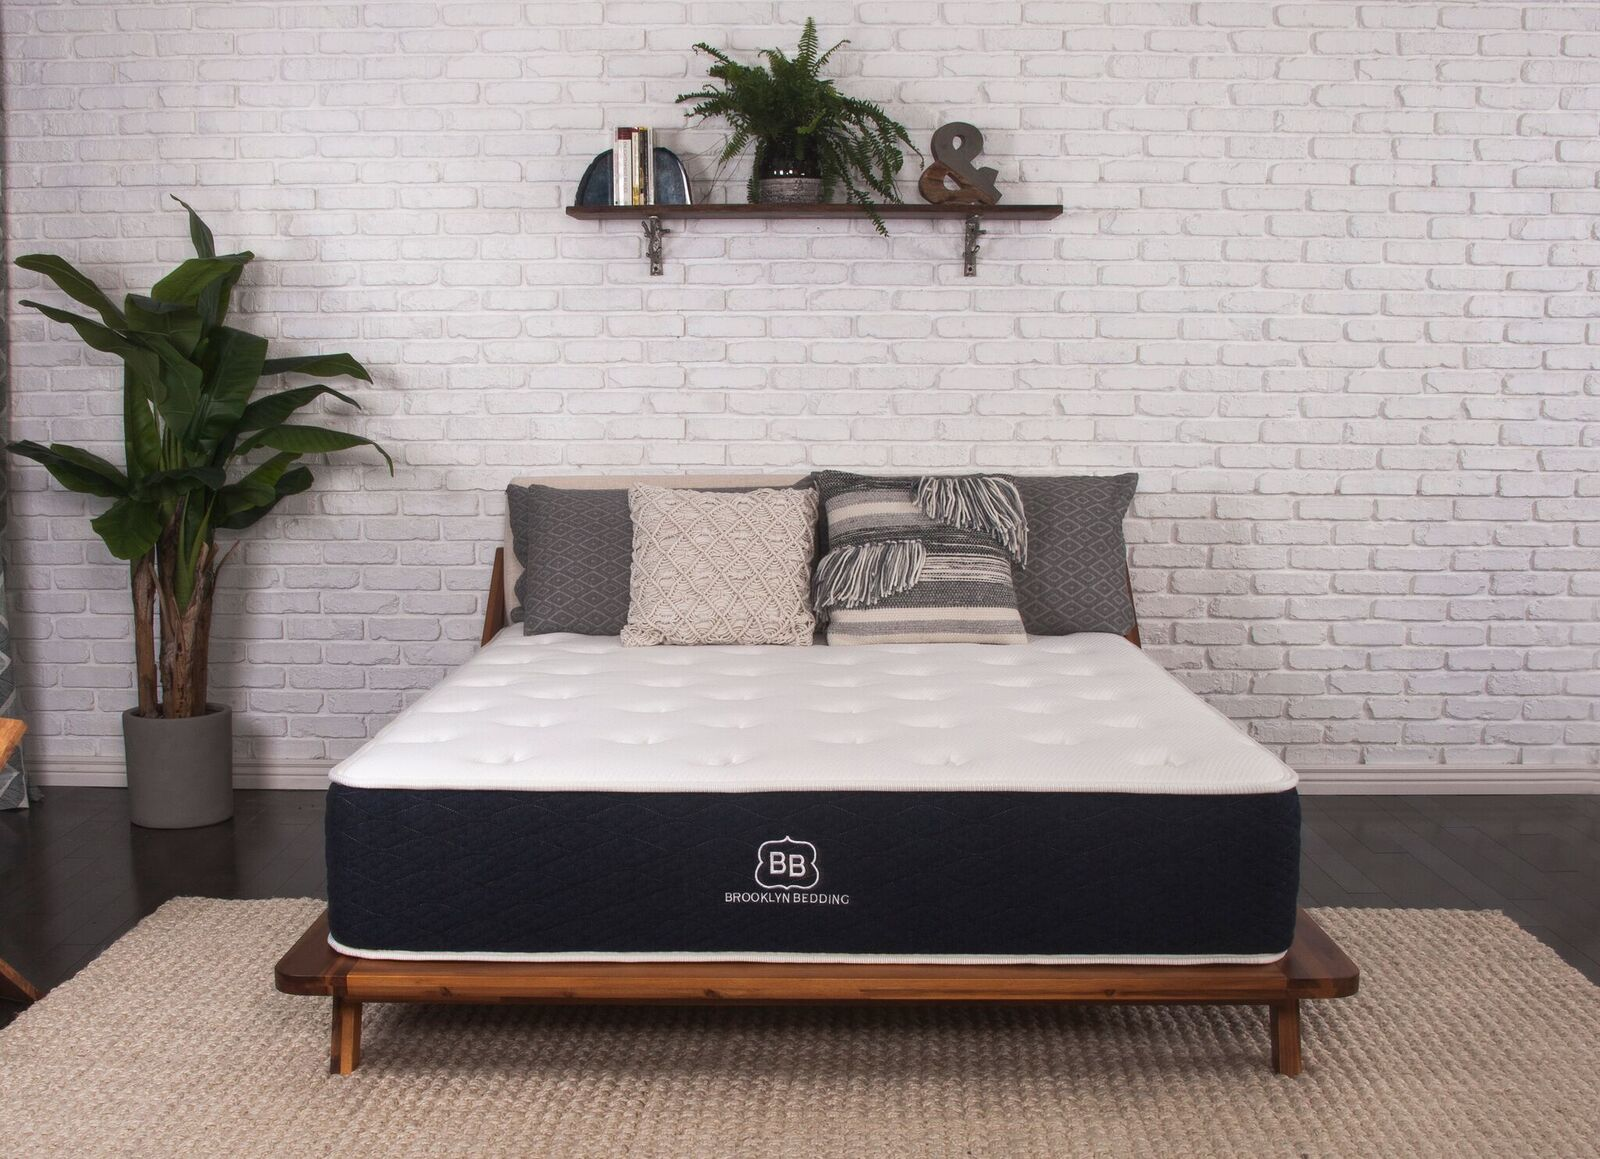 Brooklyn Bedding Mattress Coupon Promo Code 2020